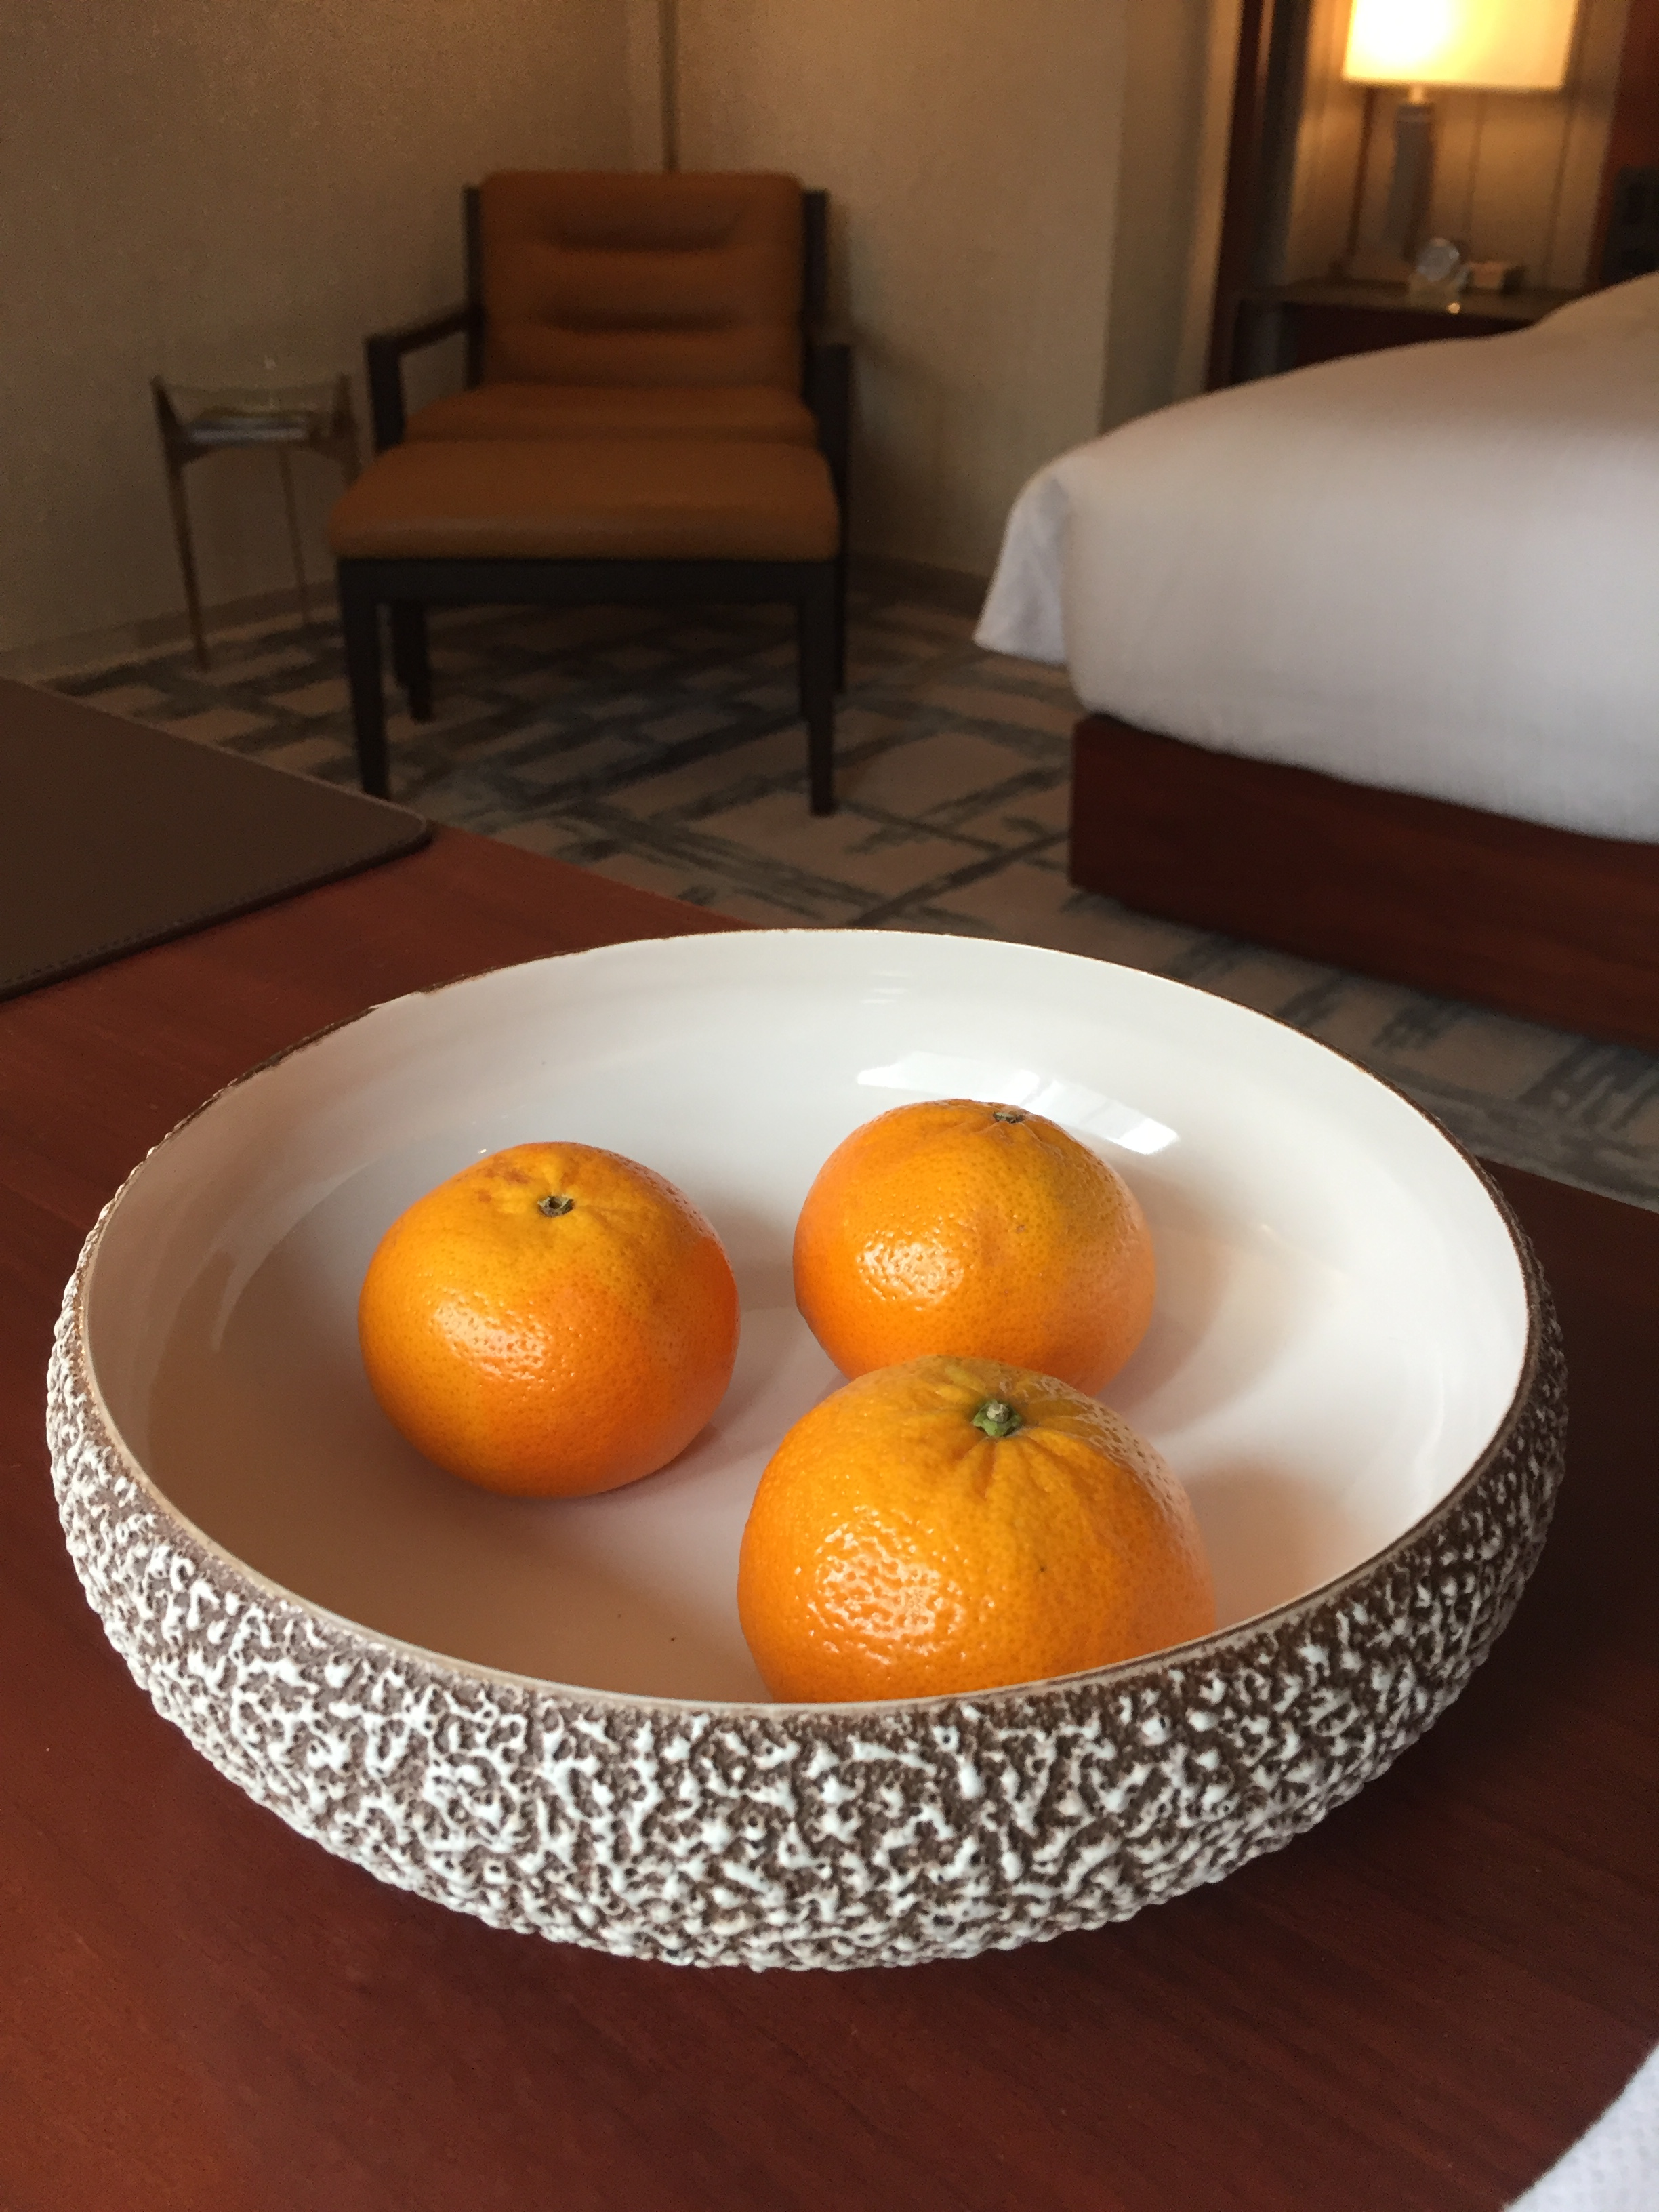 Park Hyatt New York Amenity